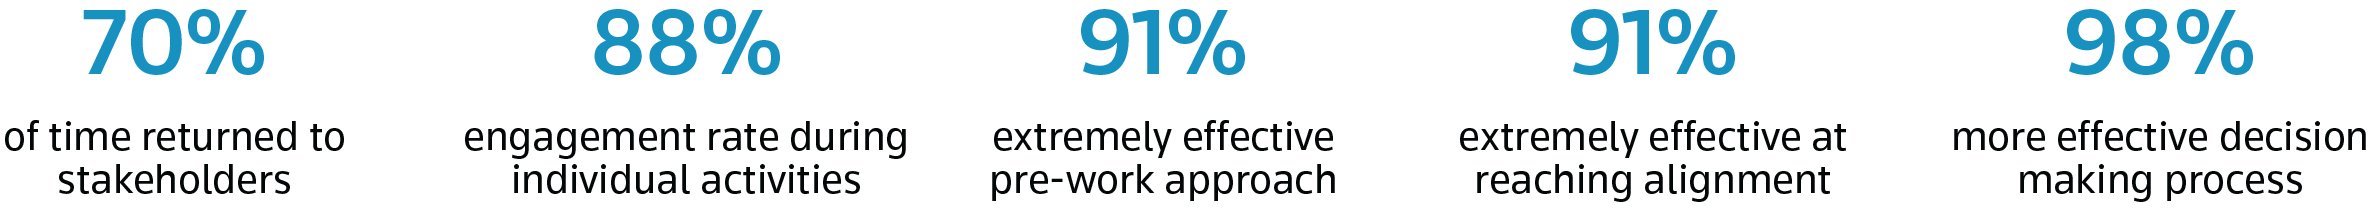 70% of time returned to stakeholders.   88% engagement rate during individual activities.  91% extremely effective pre-work approach.  91% extremely effective at reaching alignment.  98% more effective decision making process.